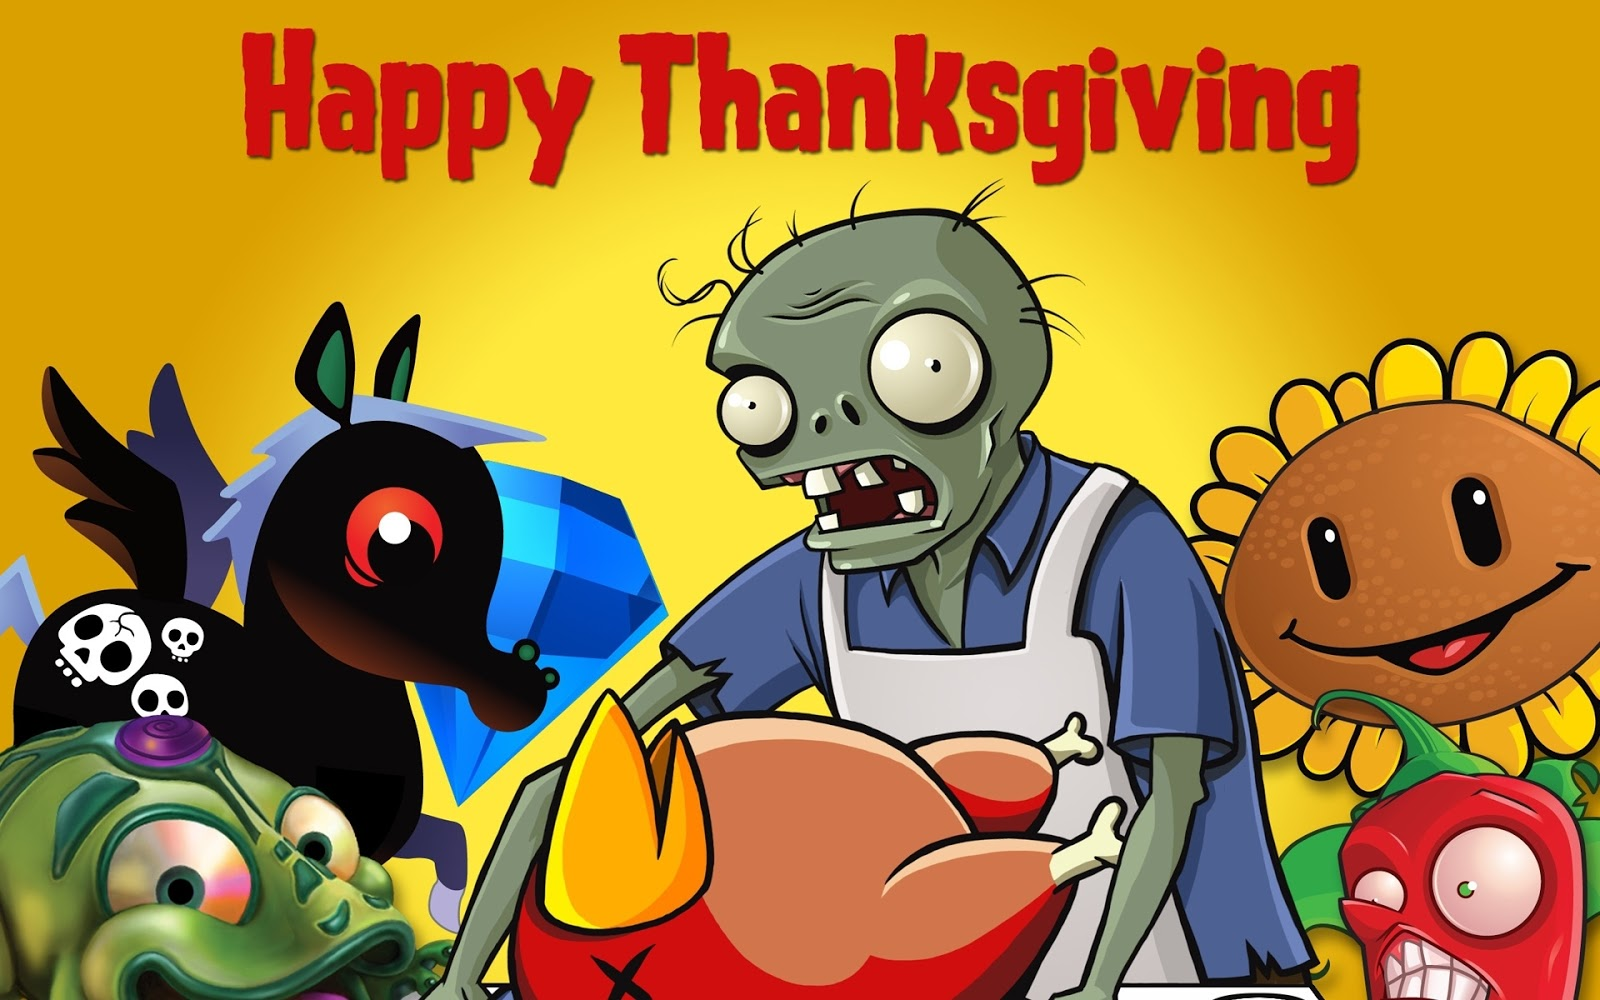 Thanksgiving day 2012 funny hd thanksgiving wallpapers for iphone 5 free hd wallpapers for - Thanksgiving wallpaper backgrounds ...